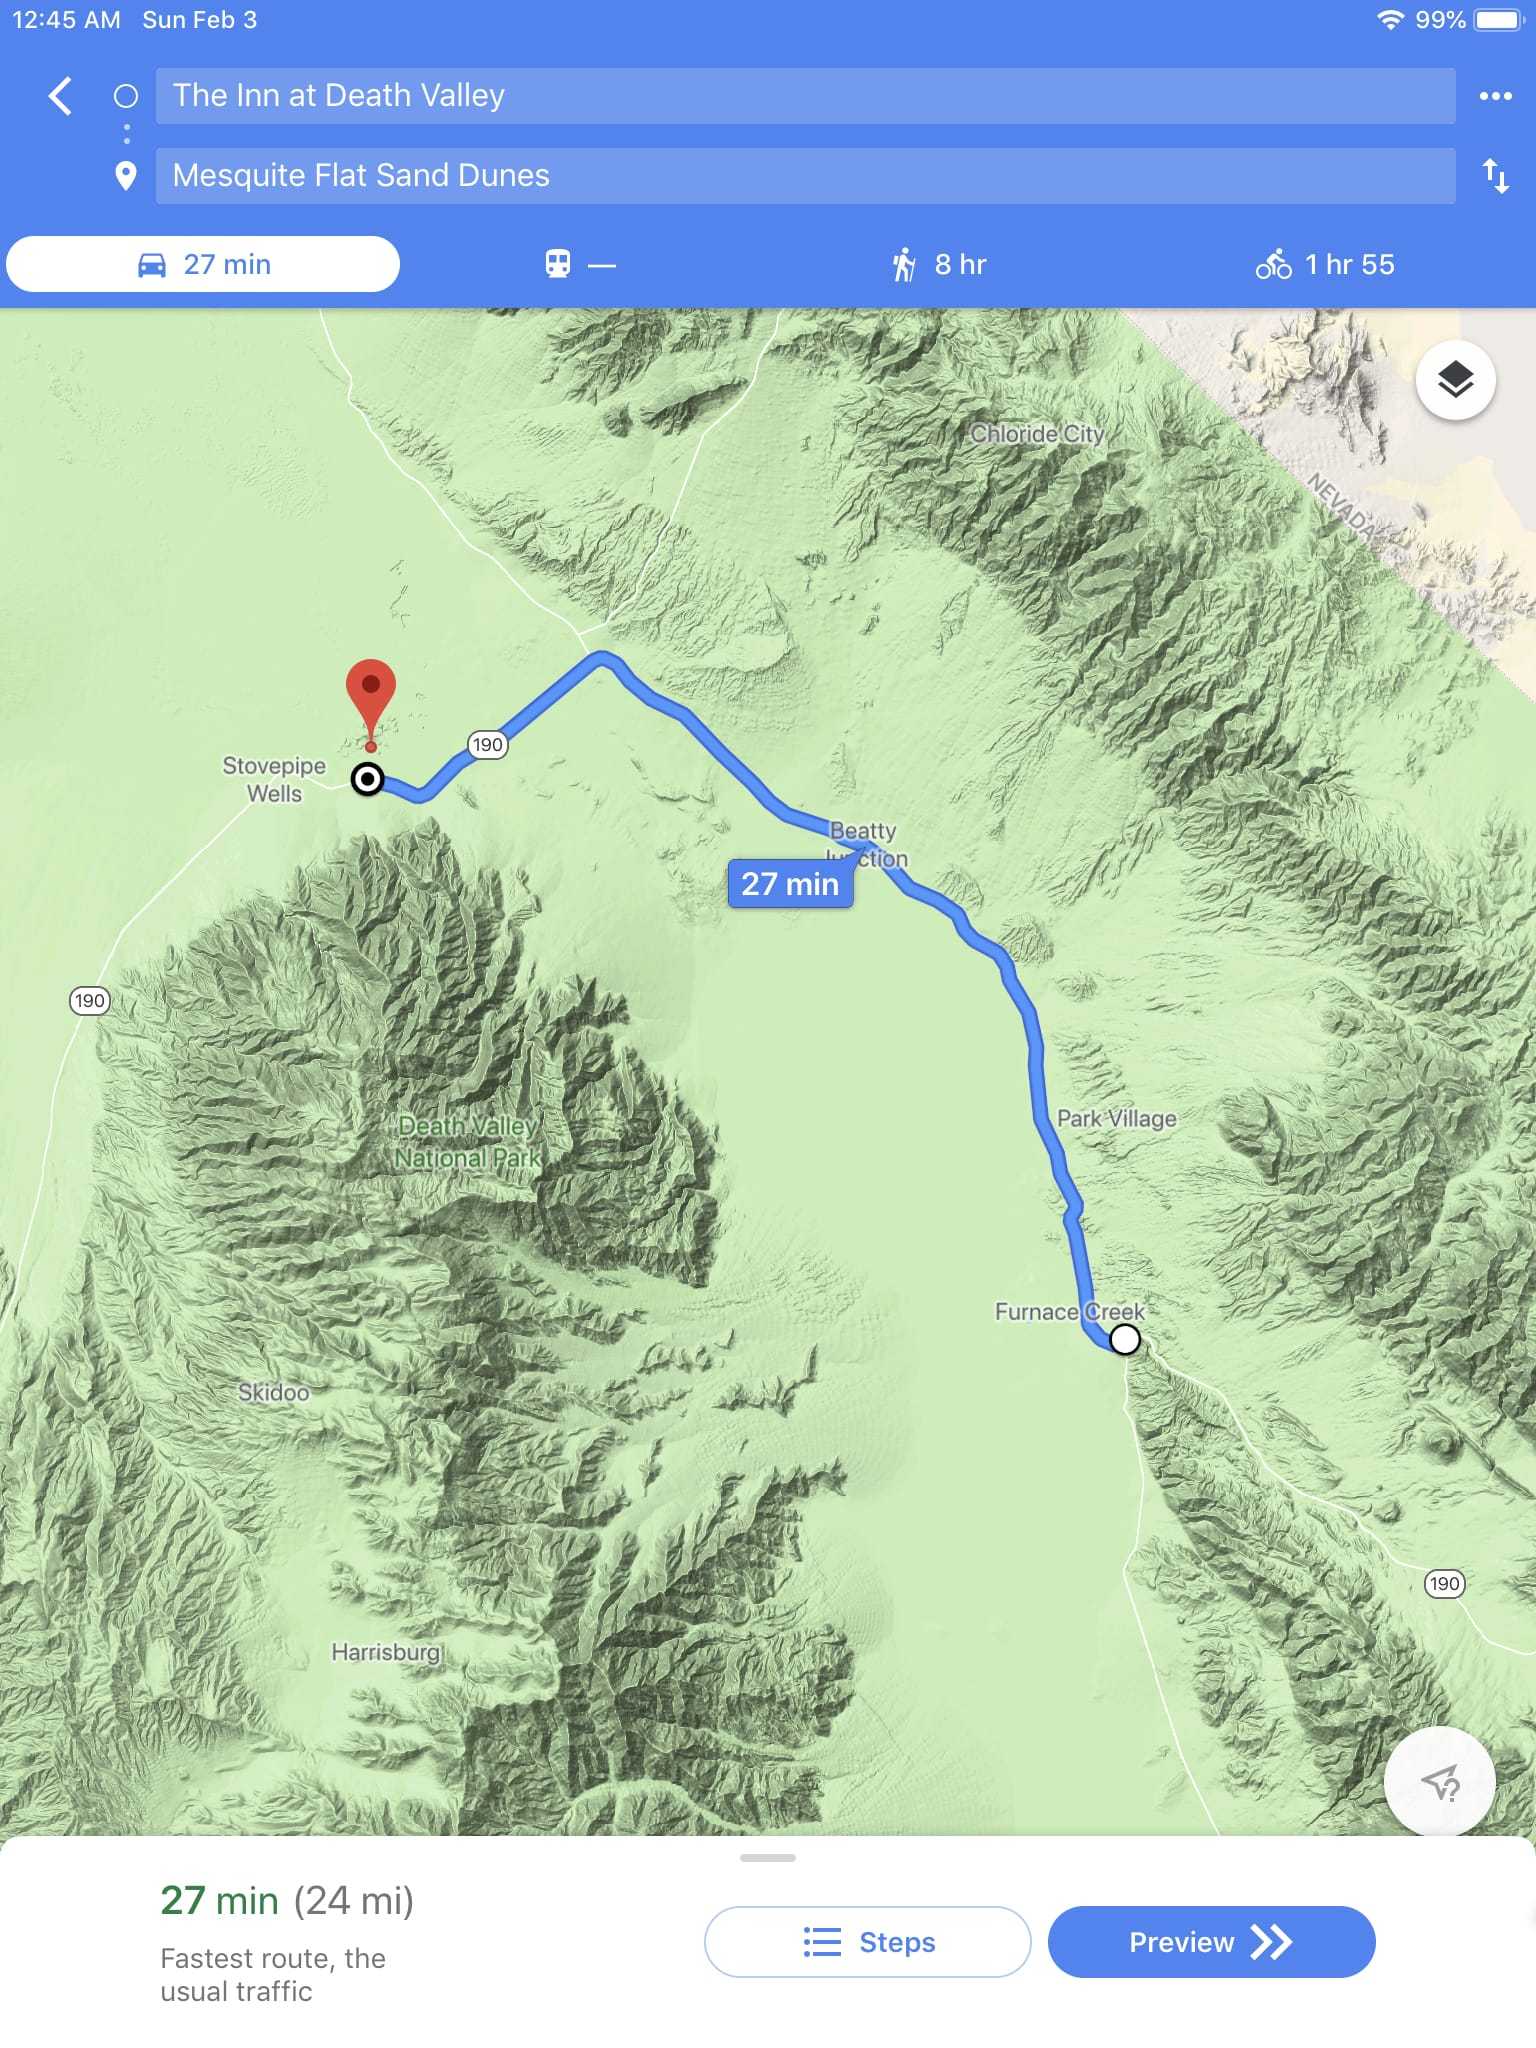 Route wmap from The Inn at Death Valley to Mesquite Flat Sand Dunes